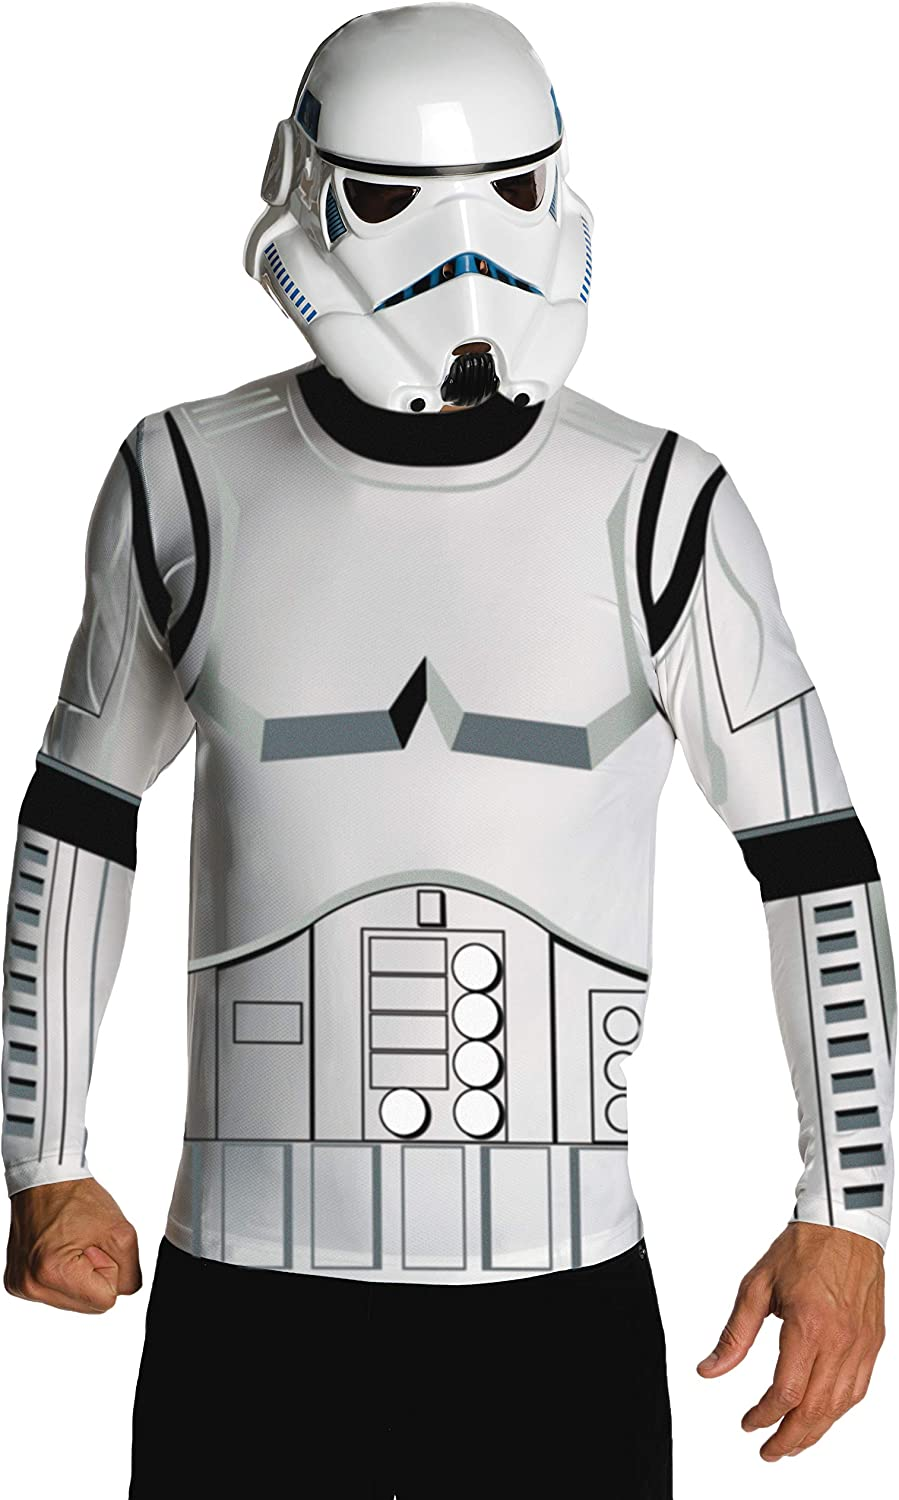 Générique Disfraz Stormtrooper Star Wars? Adulto – XL: Amazon.es ...